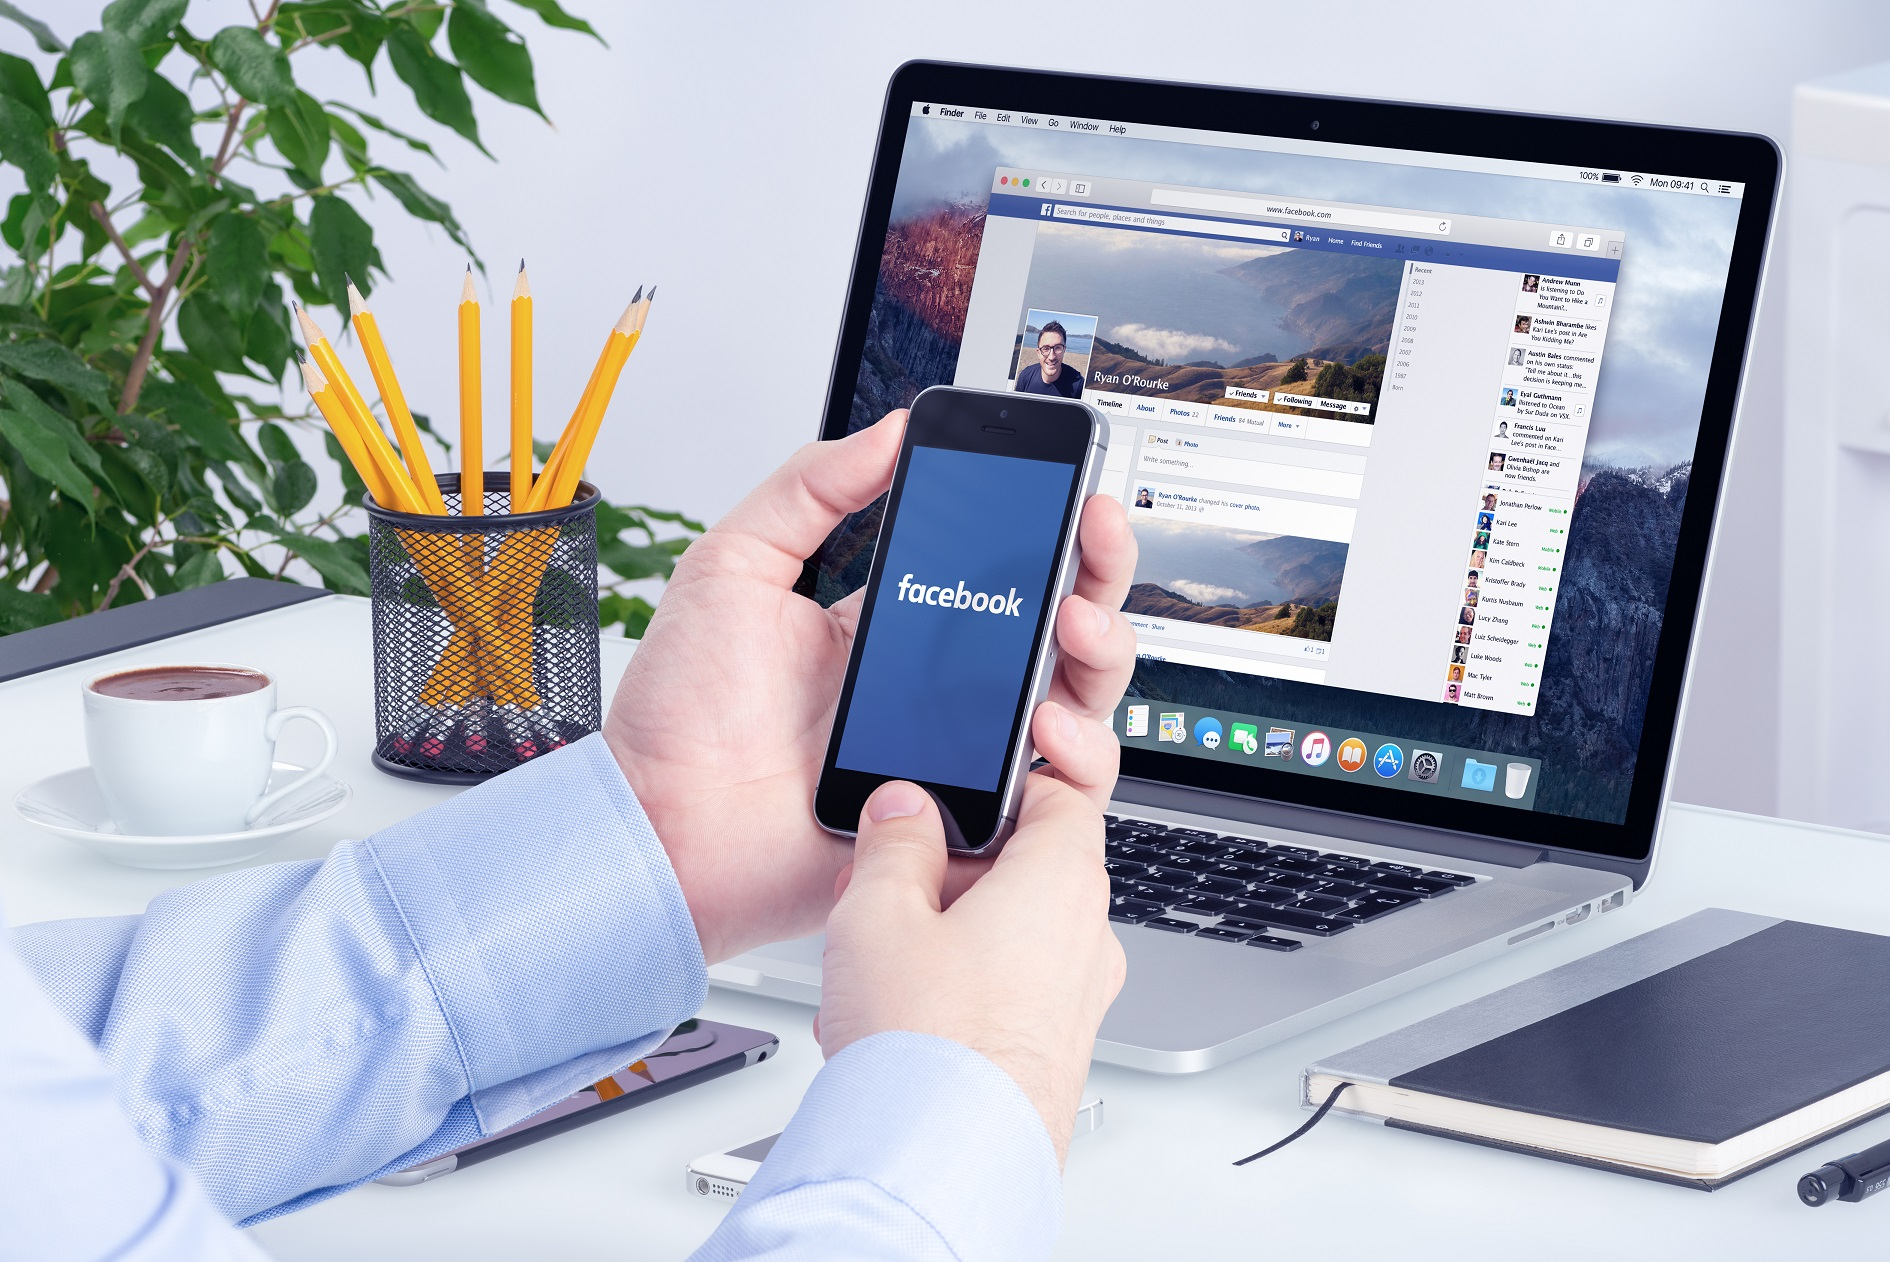 facebook-app-on-the-apple-iphone-display-and-desktop-version-of-facebook-on-the-apple-macbook-pro-retina